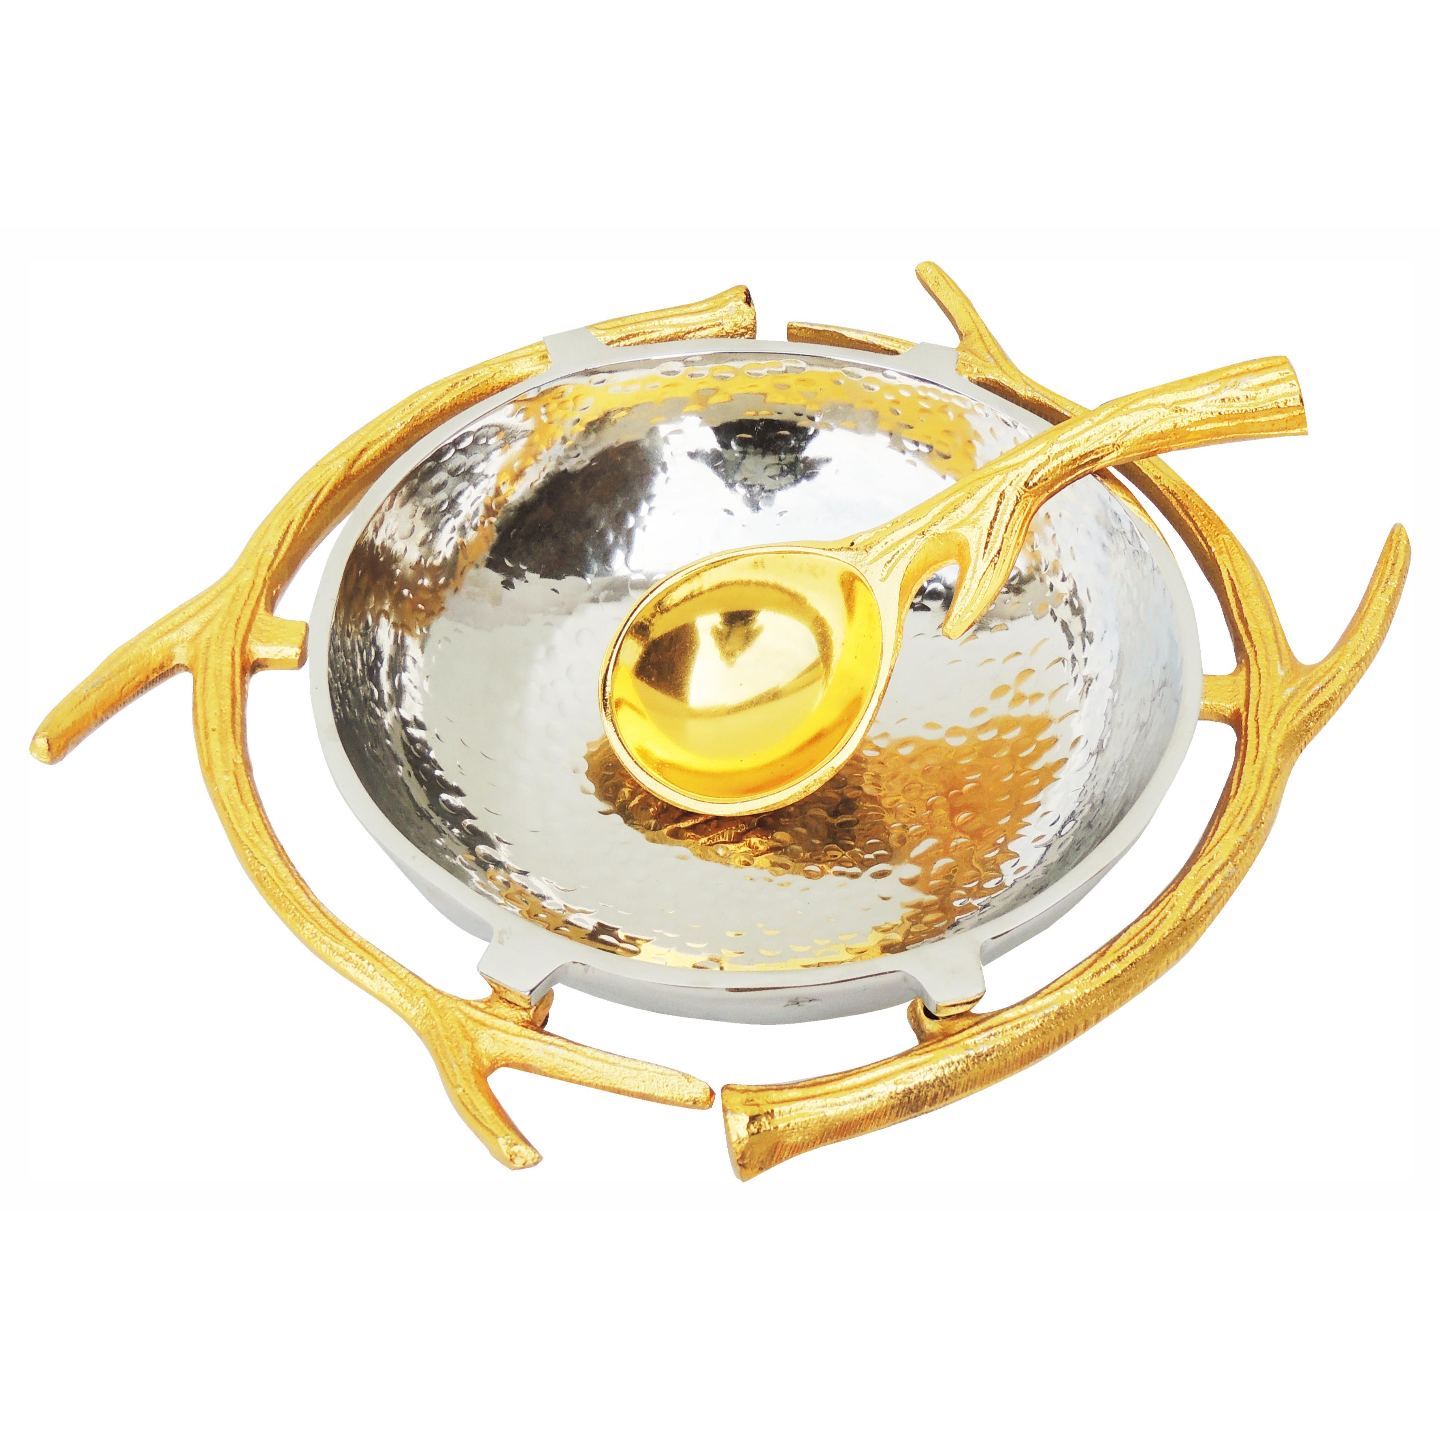 Aluminium Metal Bowl with Spoon in Nickel and Gold Finish - 1212 Inch  A324712